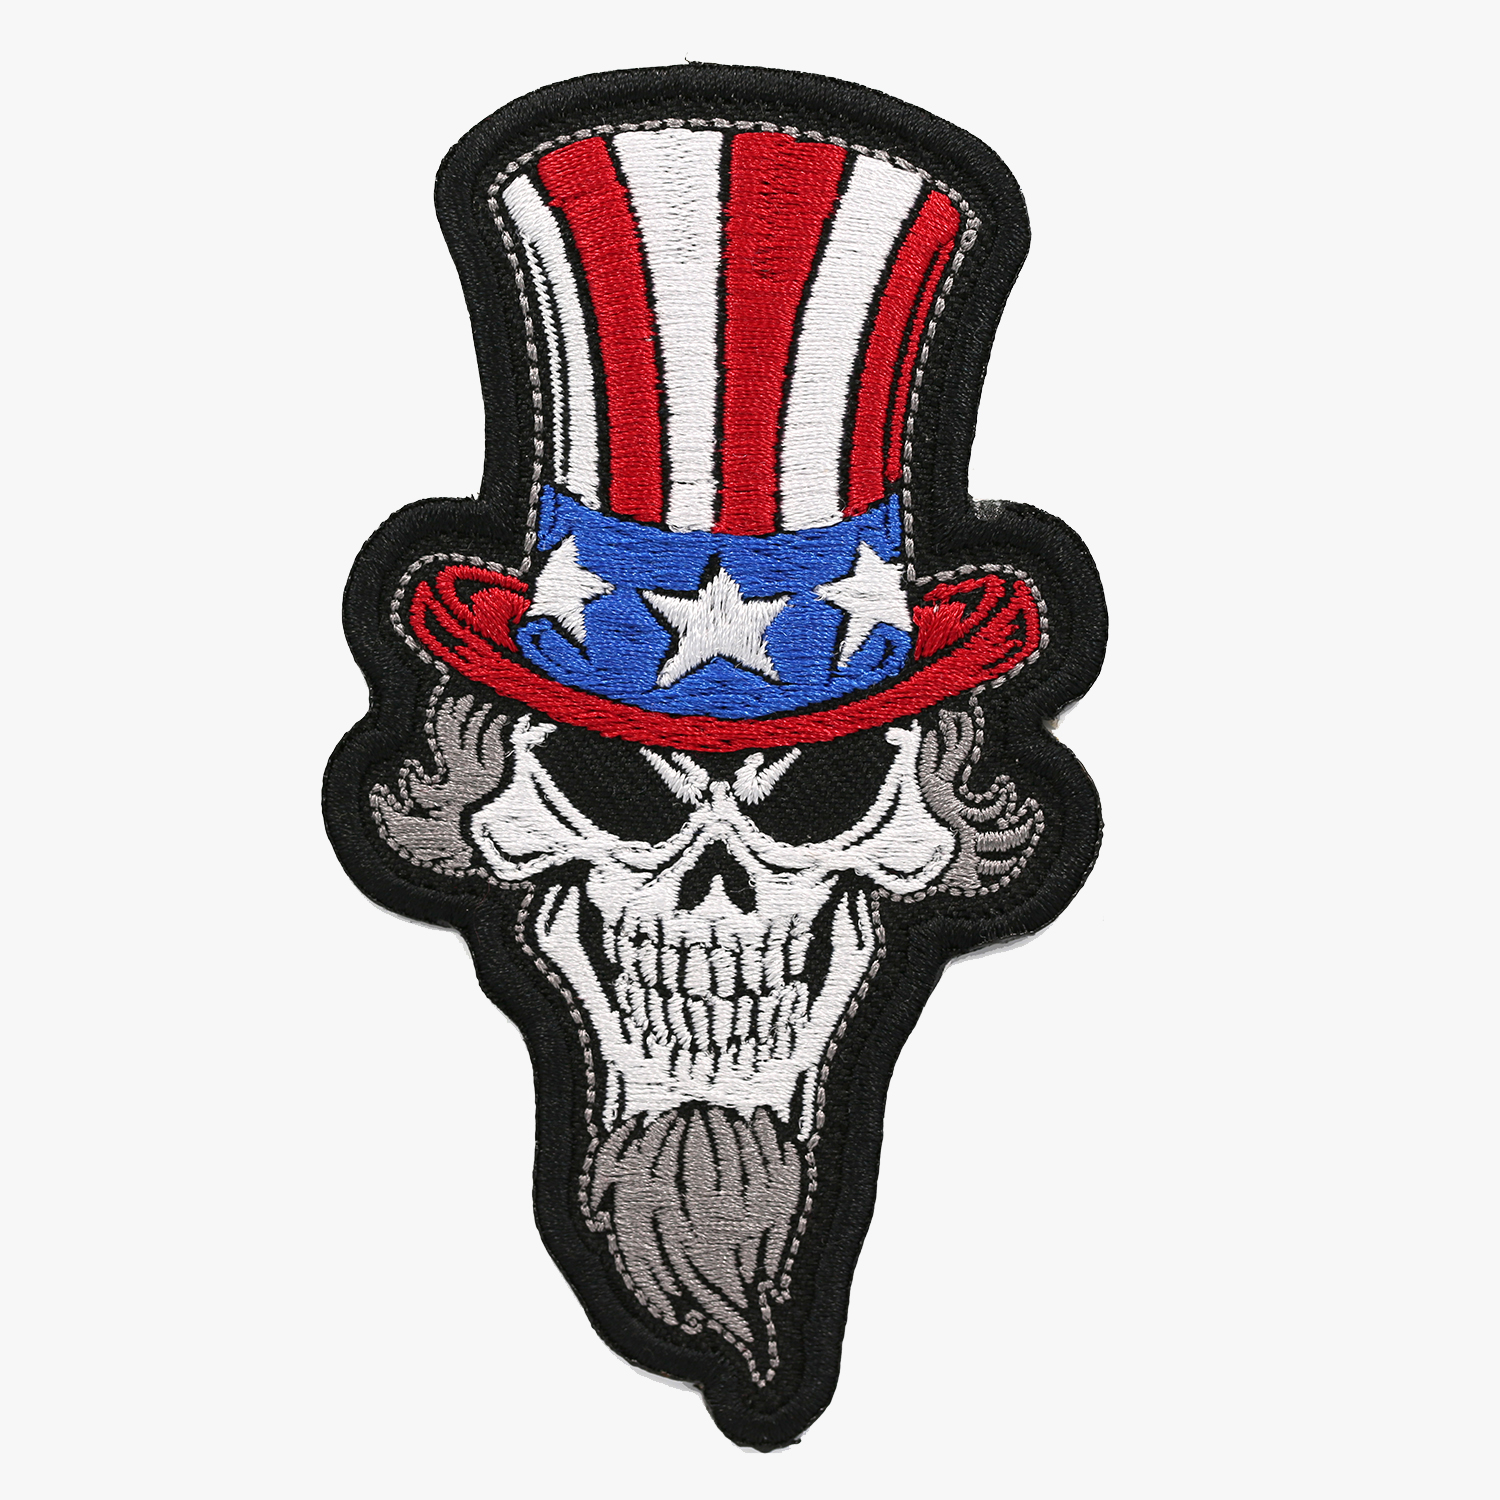 BIKERS UNCLE SAM SKULL embroidered PATCH